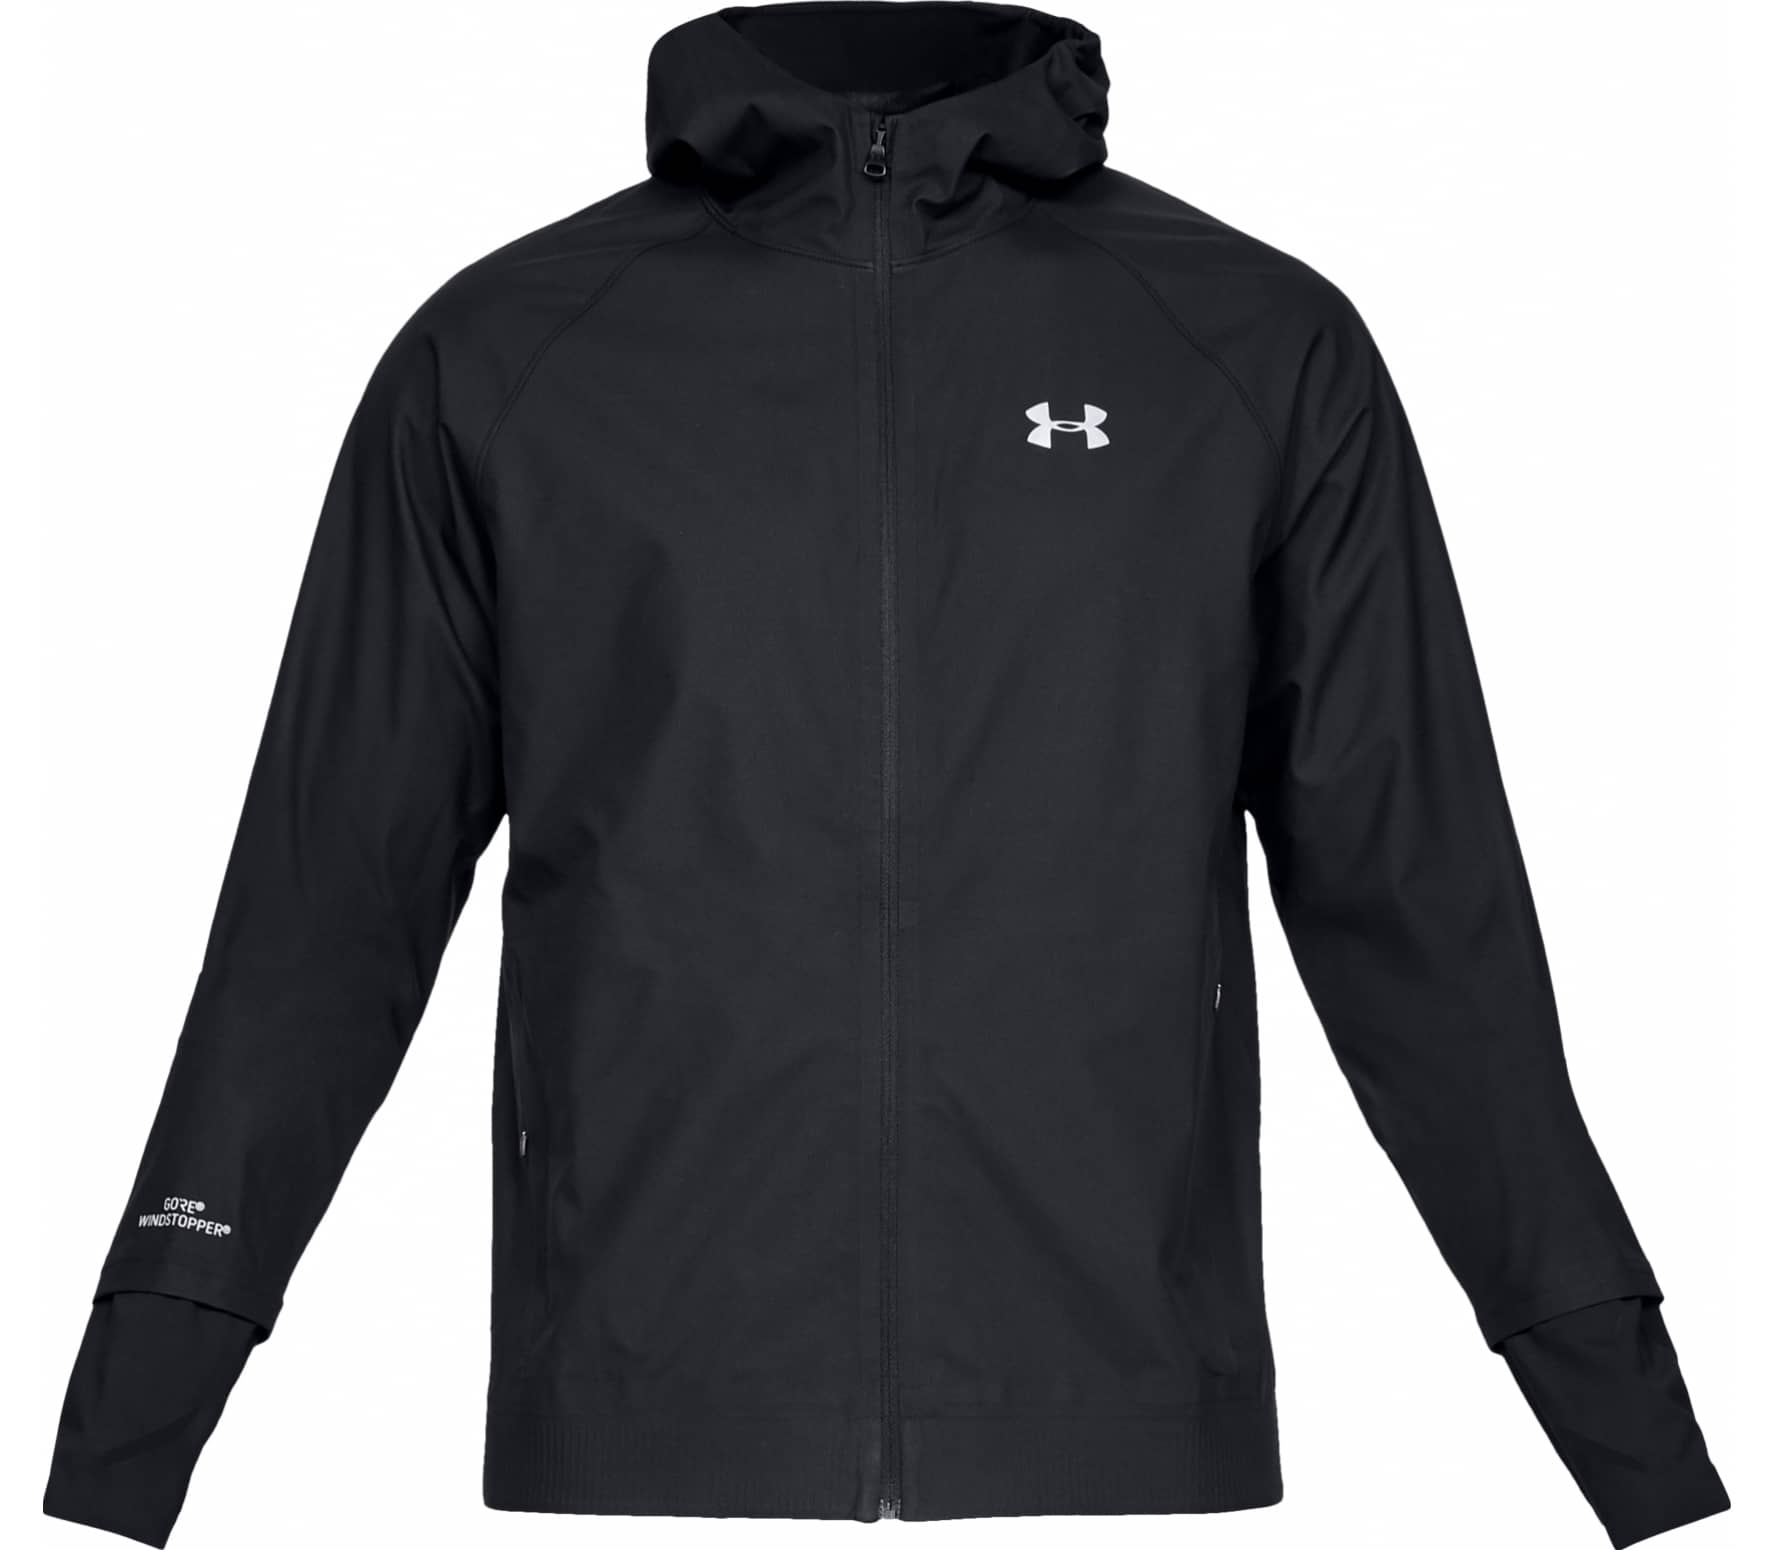 Under Armour - Gore-Tex Windstopper men's running jacket (black) - S thumbnail